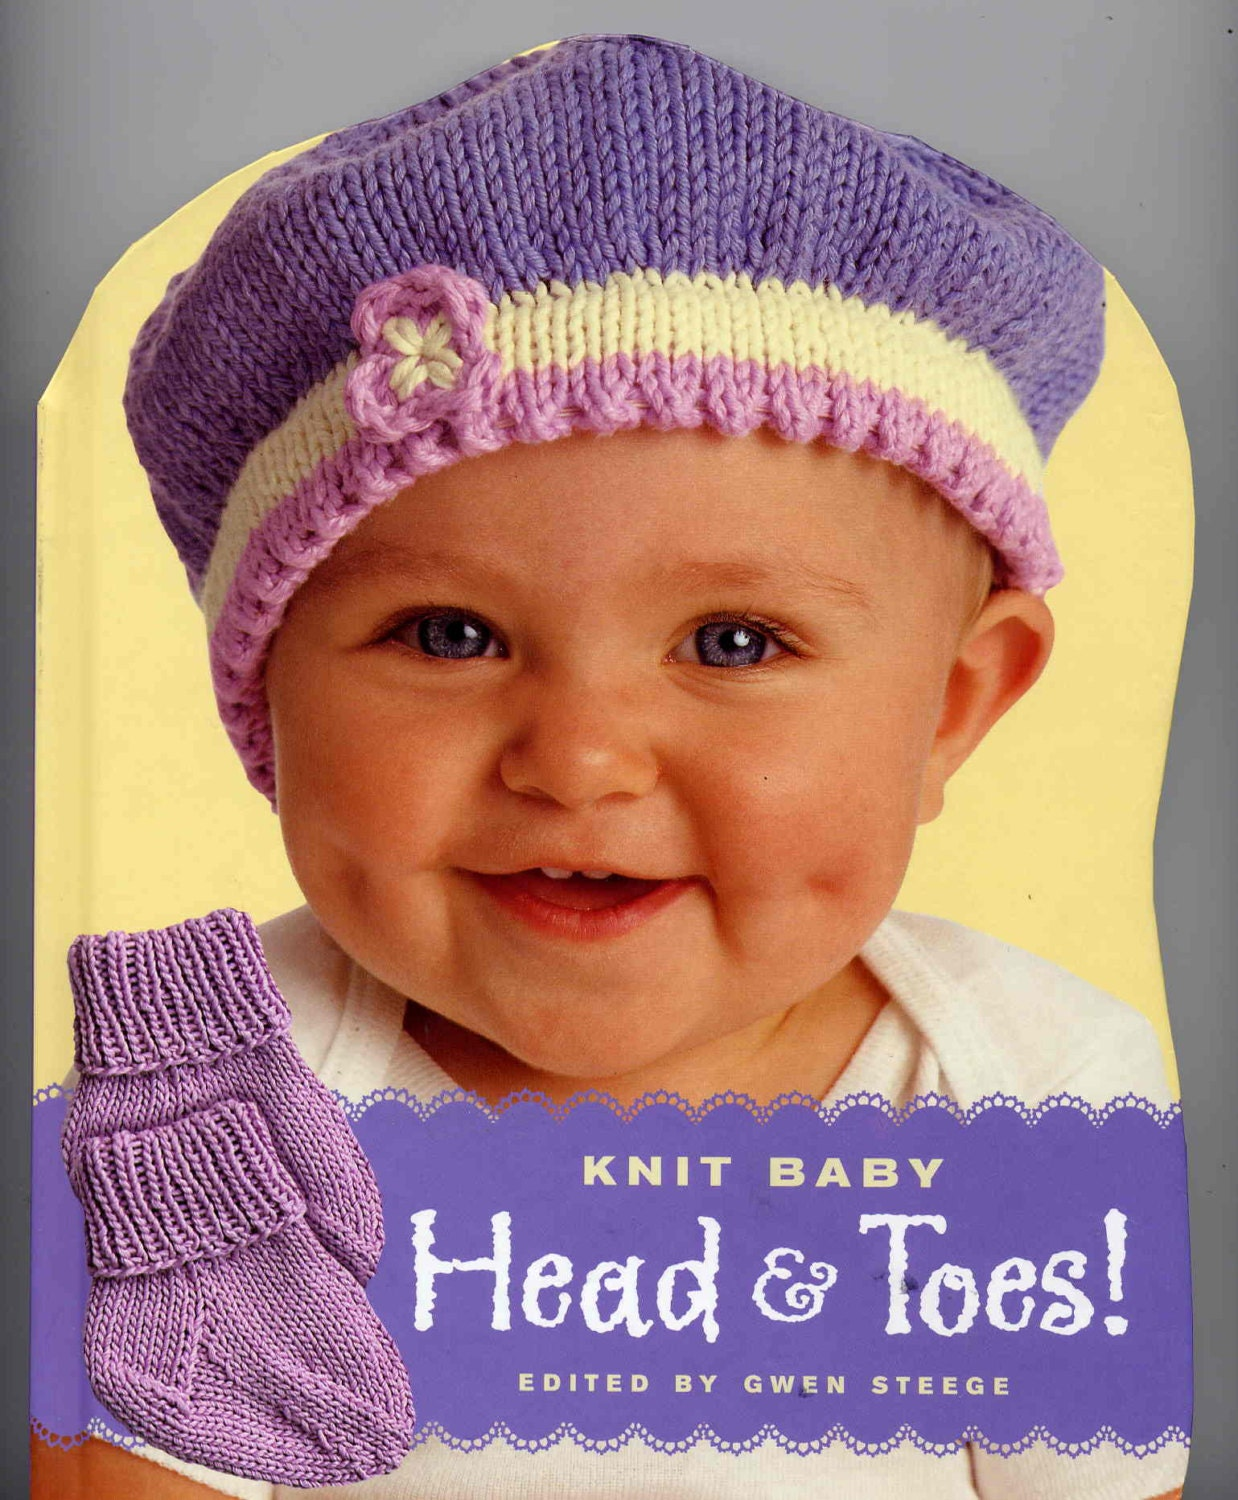 Free Knitting Pattern Toddler Beret : Knit Baby Head & Toes! 15 Knitting Patterns Hats, Socks ...